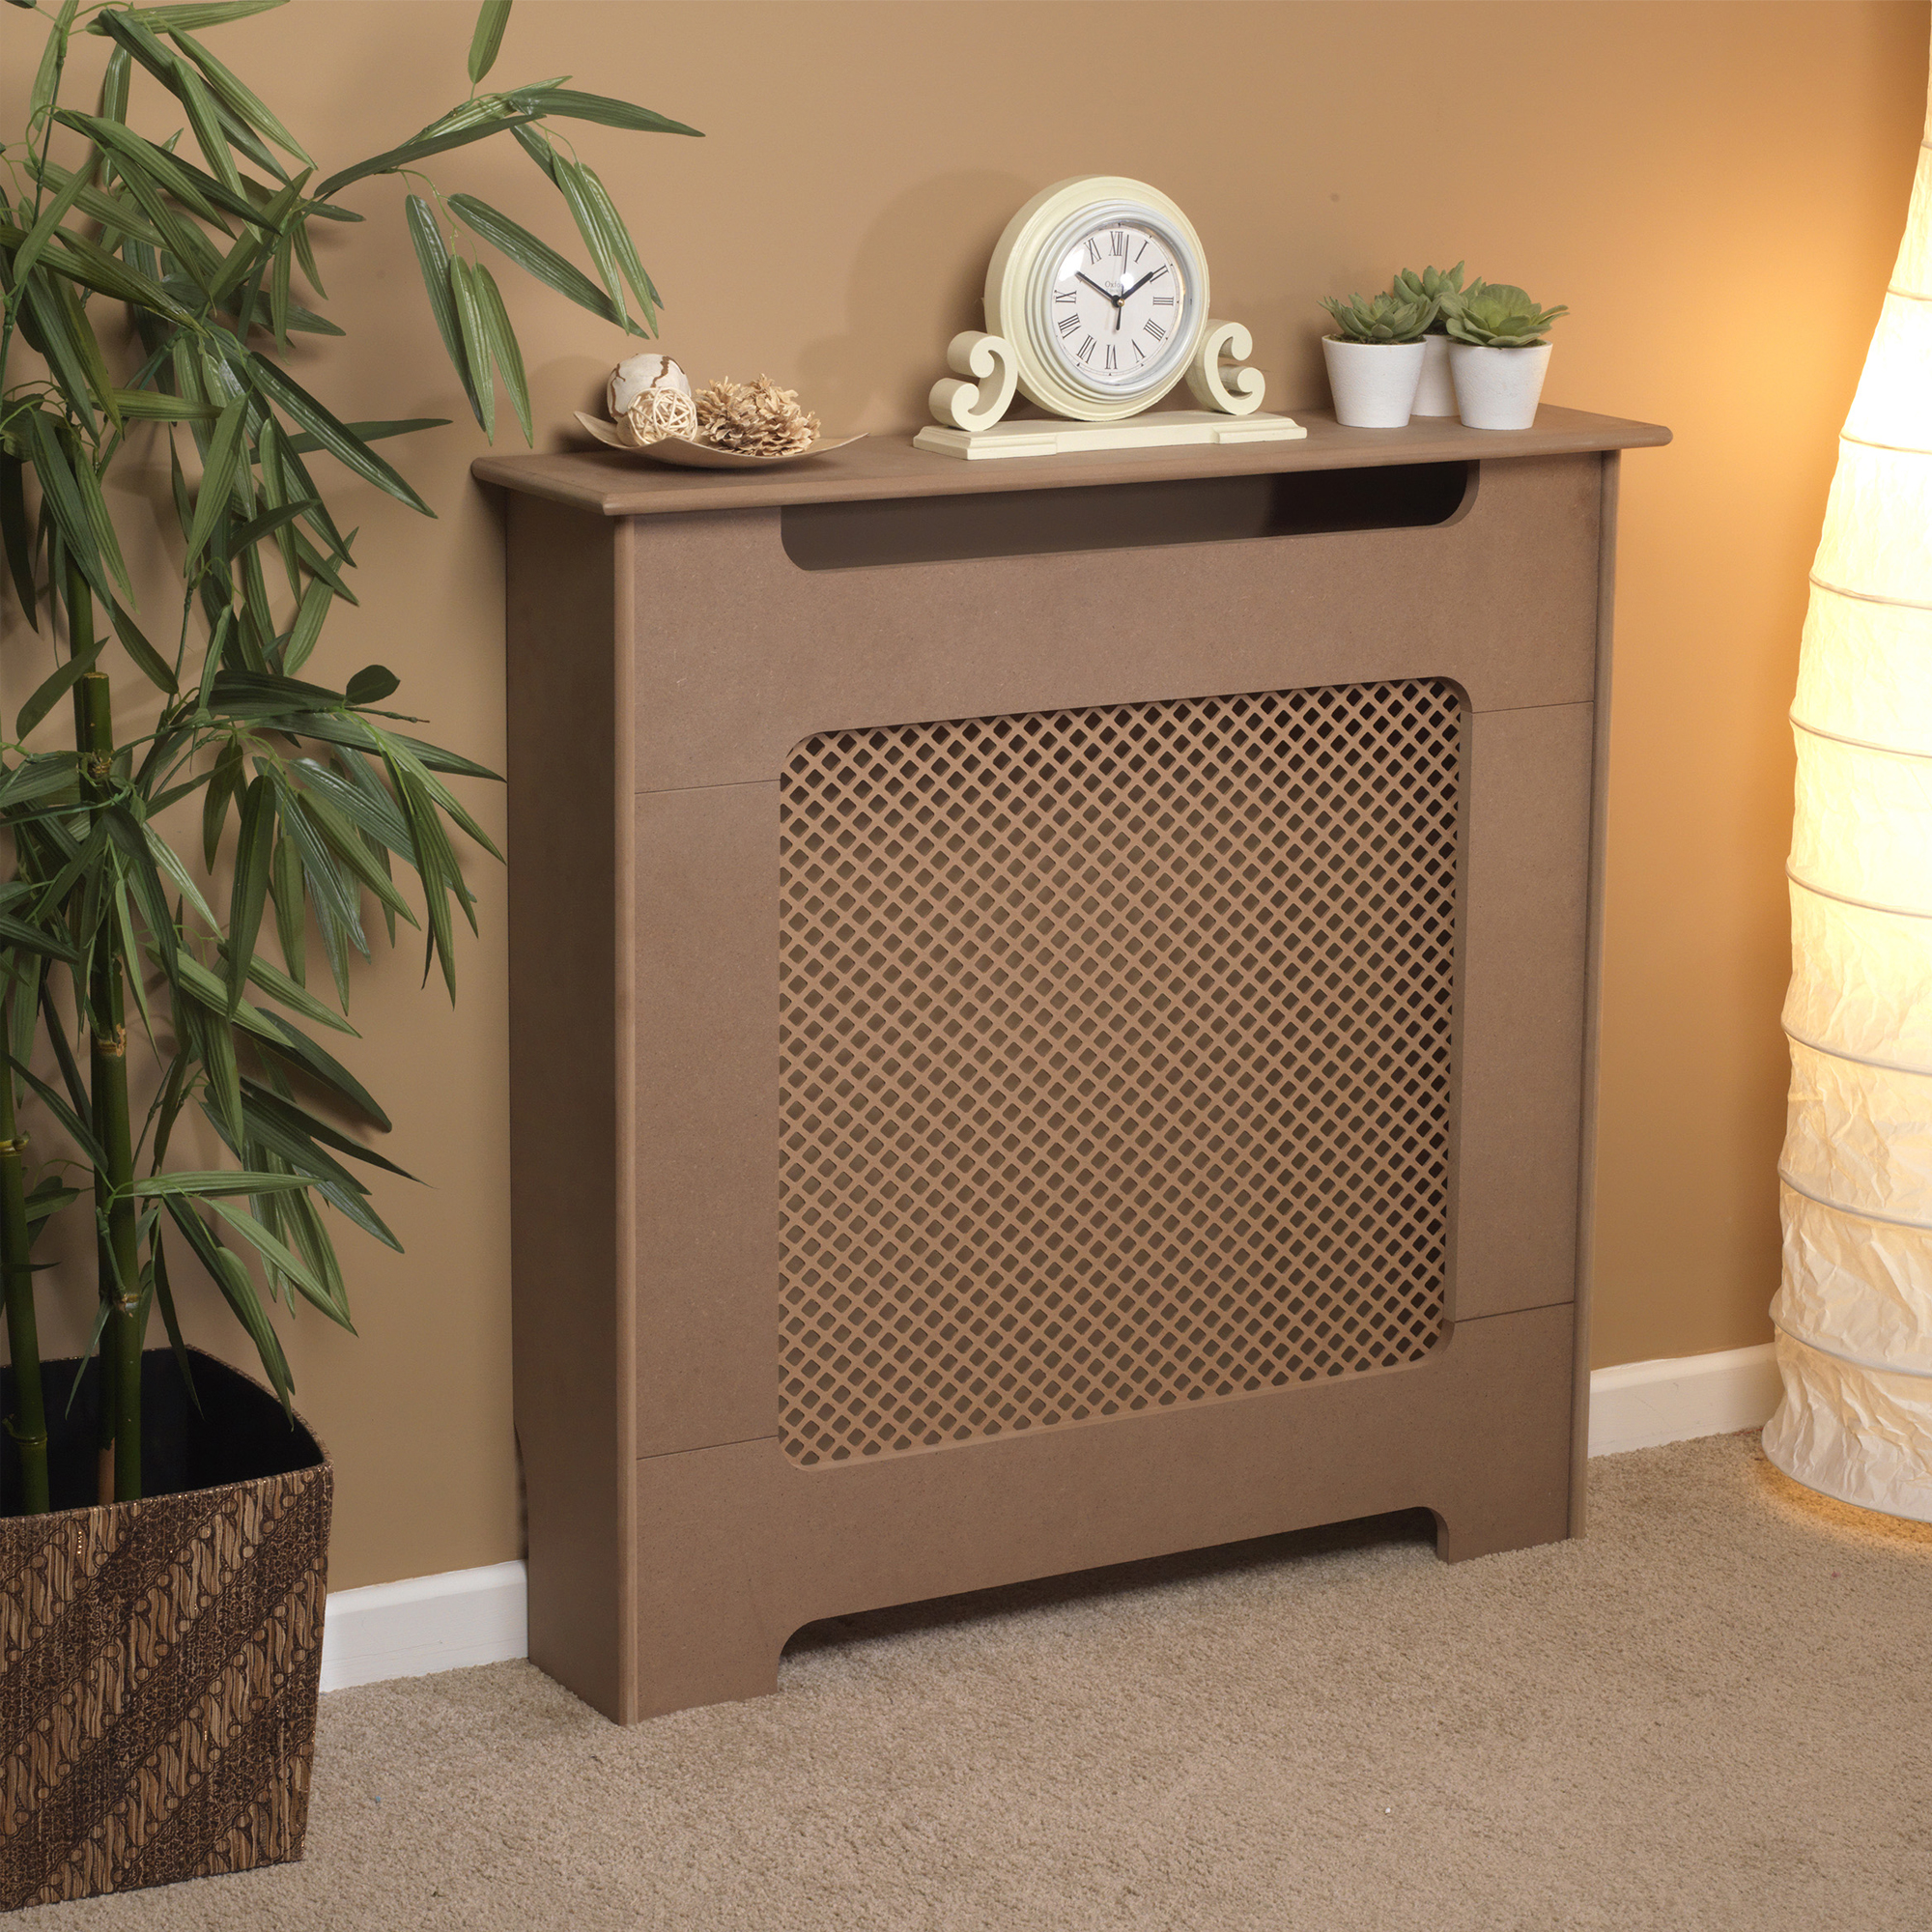 Beldray Eh1837stk Wooden Radiator Cover 100 Fsc Small Natural Finish No1brands4you